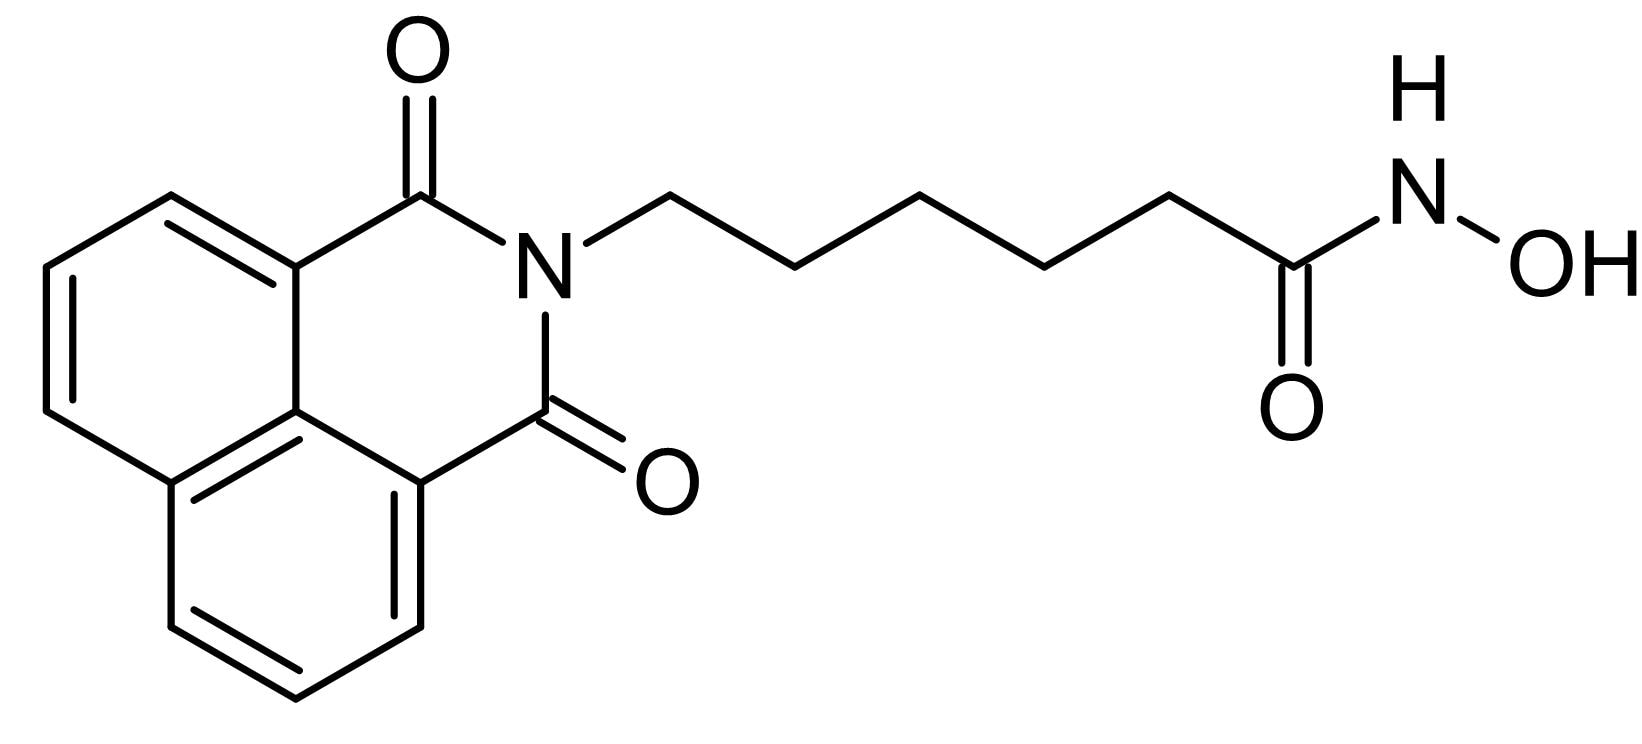 Chemical Structure - Scriptaid, HDAC inhibitor (ab120883)